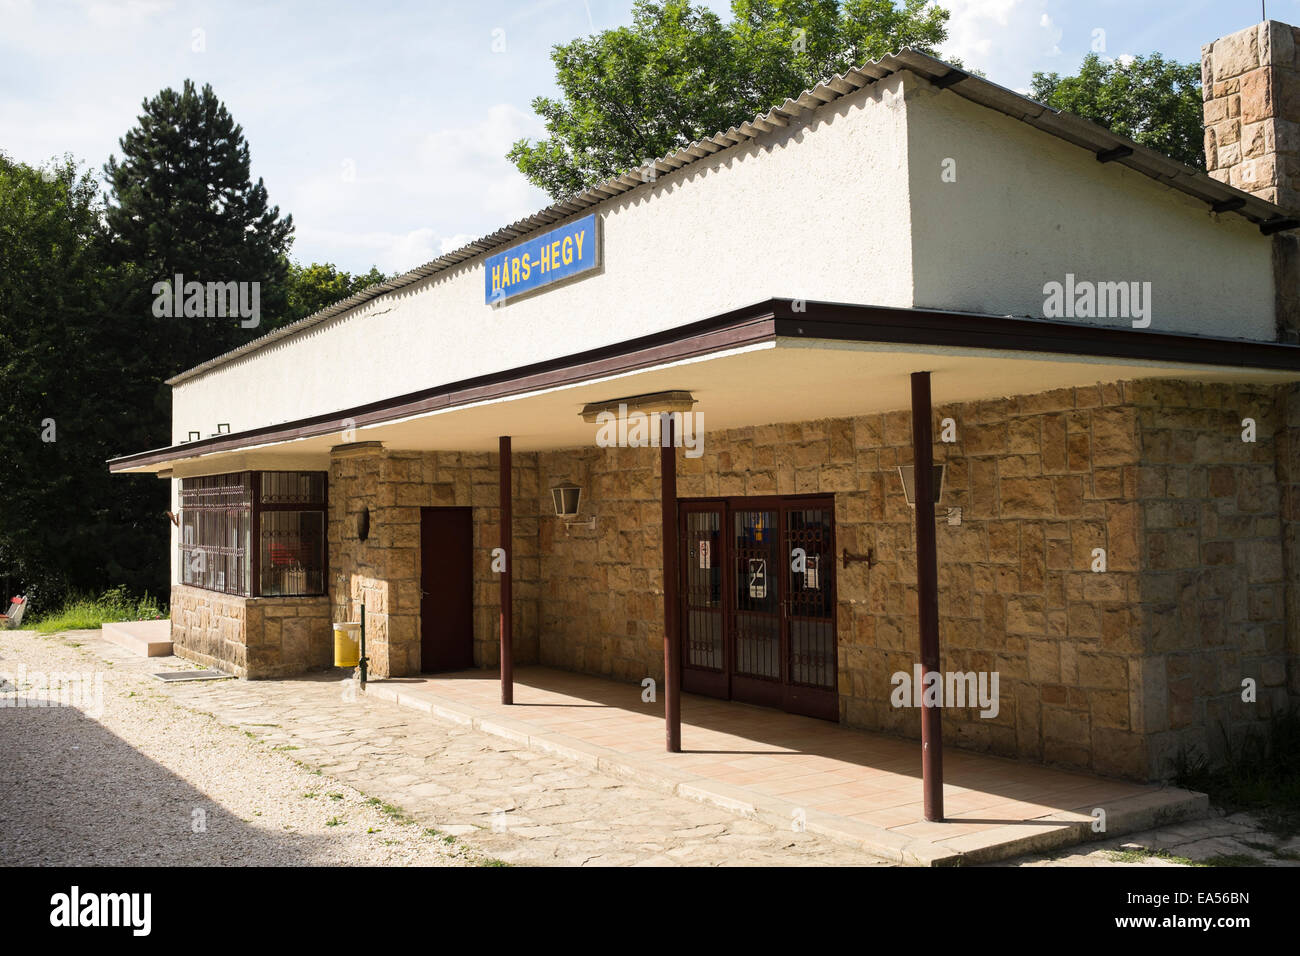 A station on the children's railway, on the outskirts of Budapest, Hungary Stock Photo